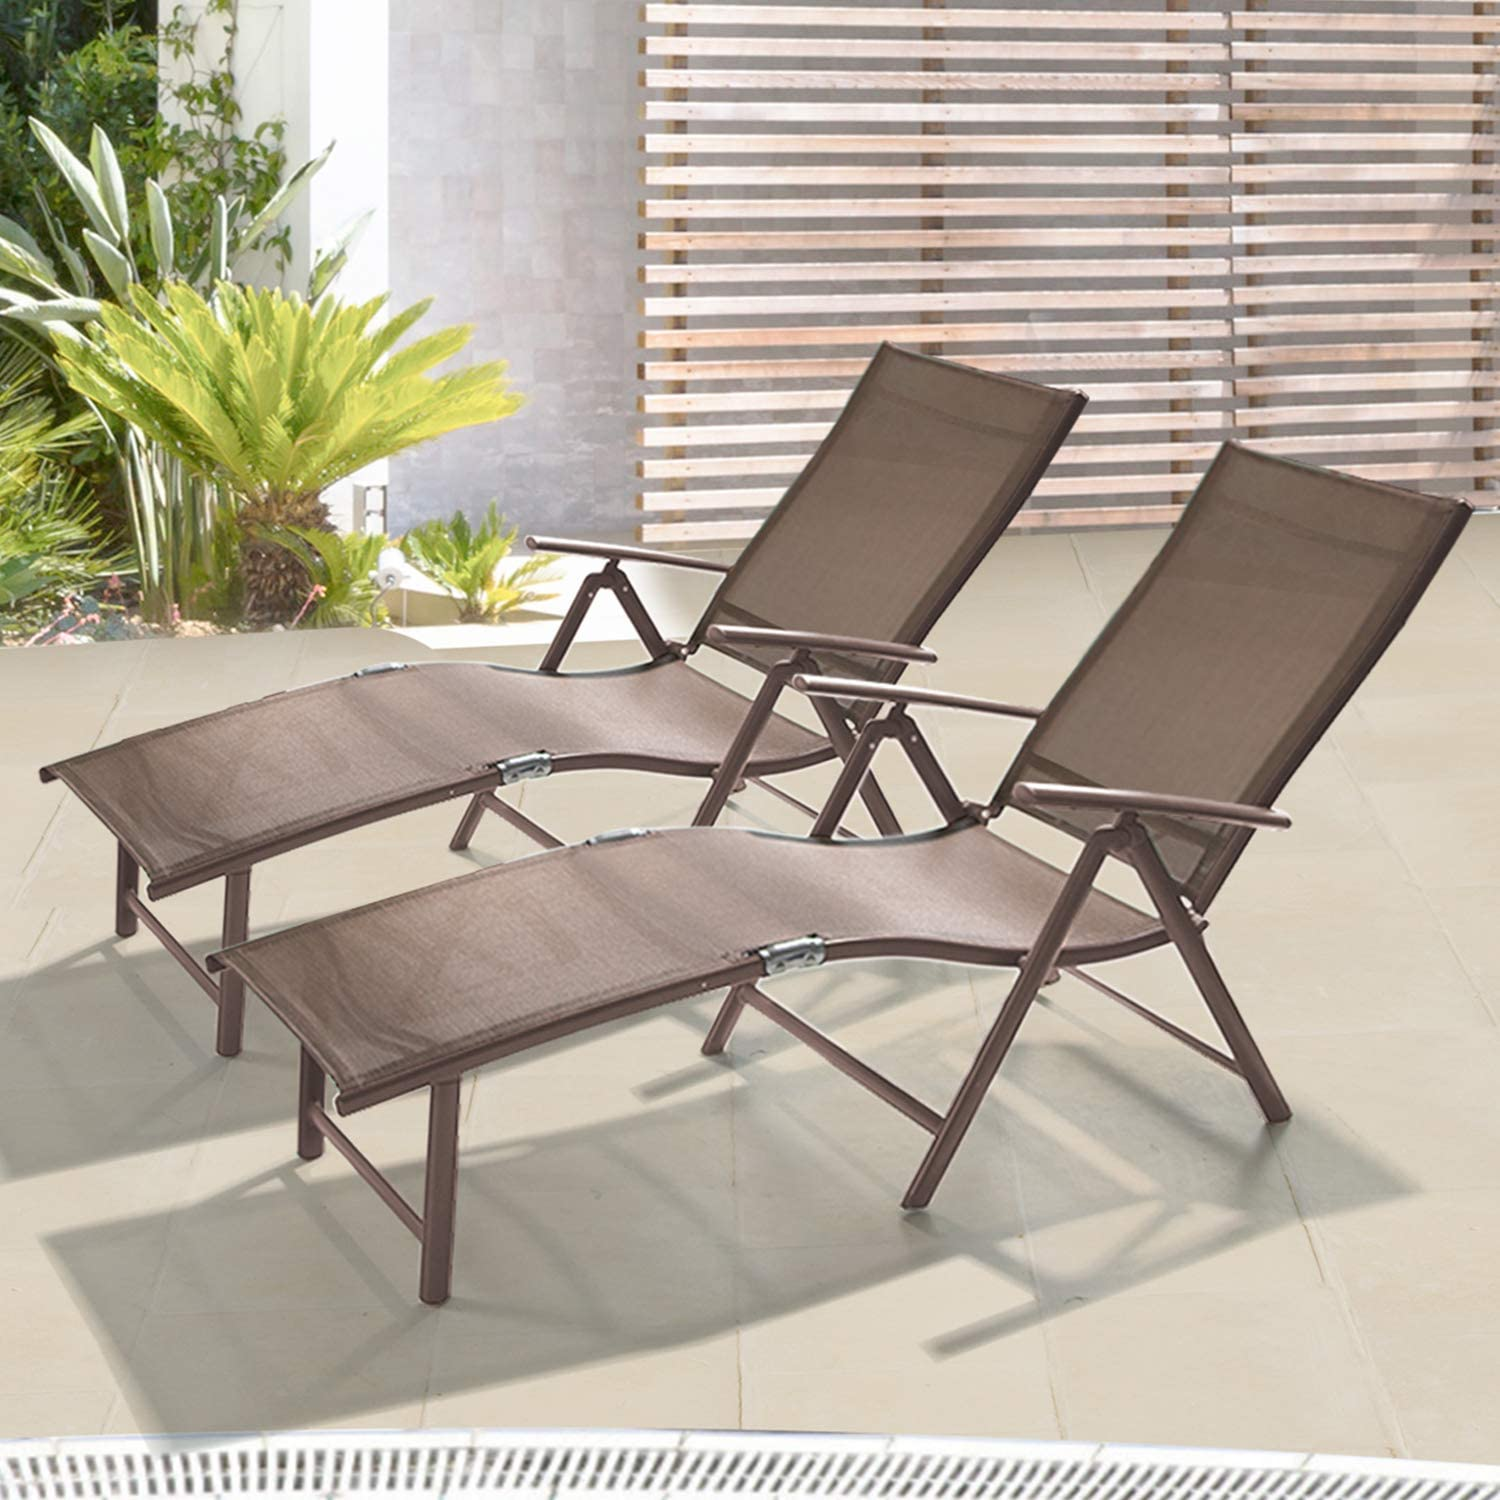 Set of 2 Patio Chaise Lounge Outdoor Adjustable Folding Lounge Chair Recliner with 8 Adjustable Backrest Positions for Pool Beach Yard : Patio, Lawn & Garden